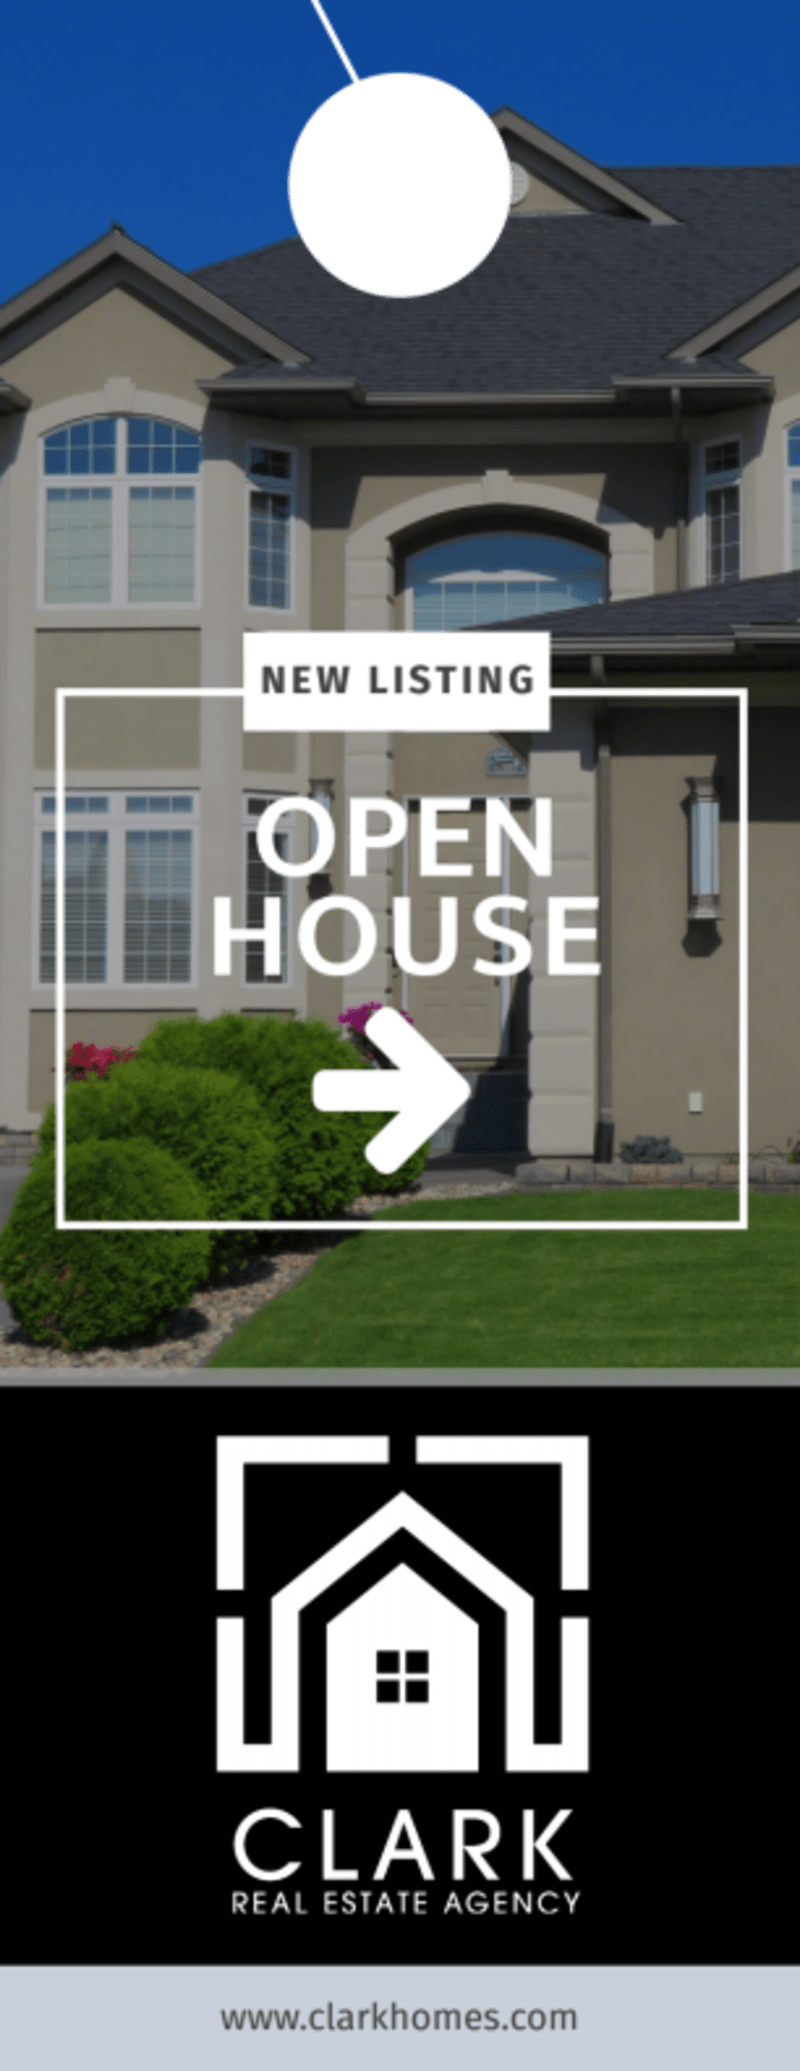 Real Estate Open House Door Hanger Template Preview 2